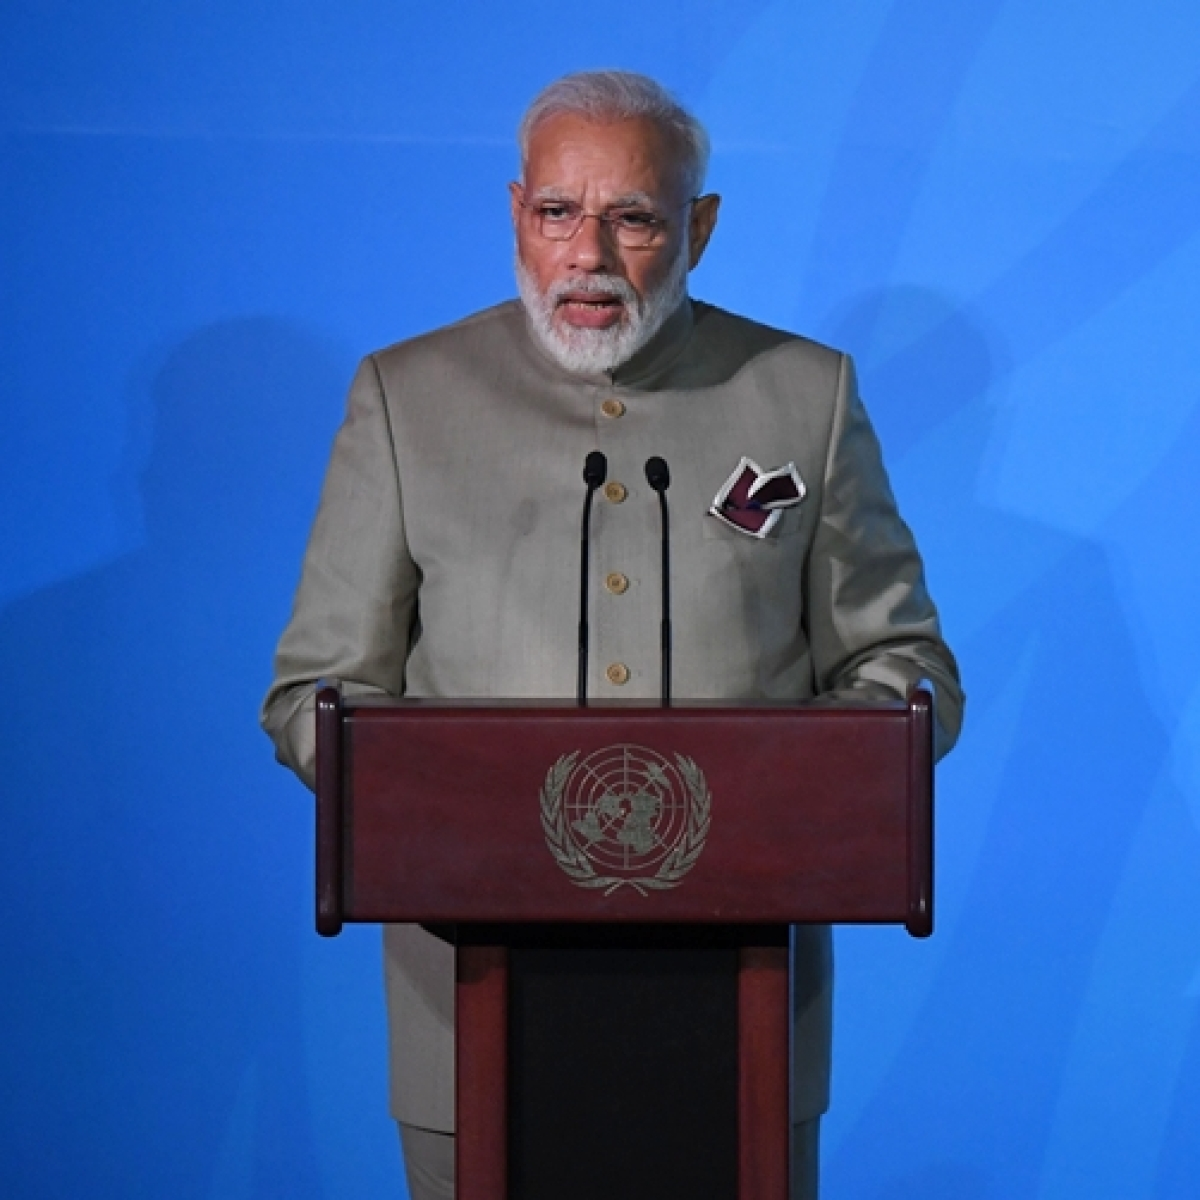 UN Climate Summit: Modi pledges to increase India's non-fossil fuel target to 400 GW by 2022